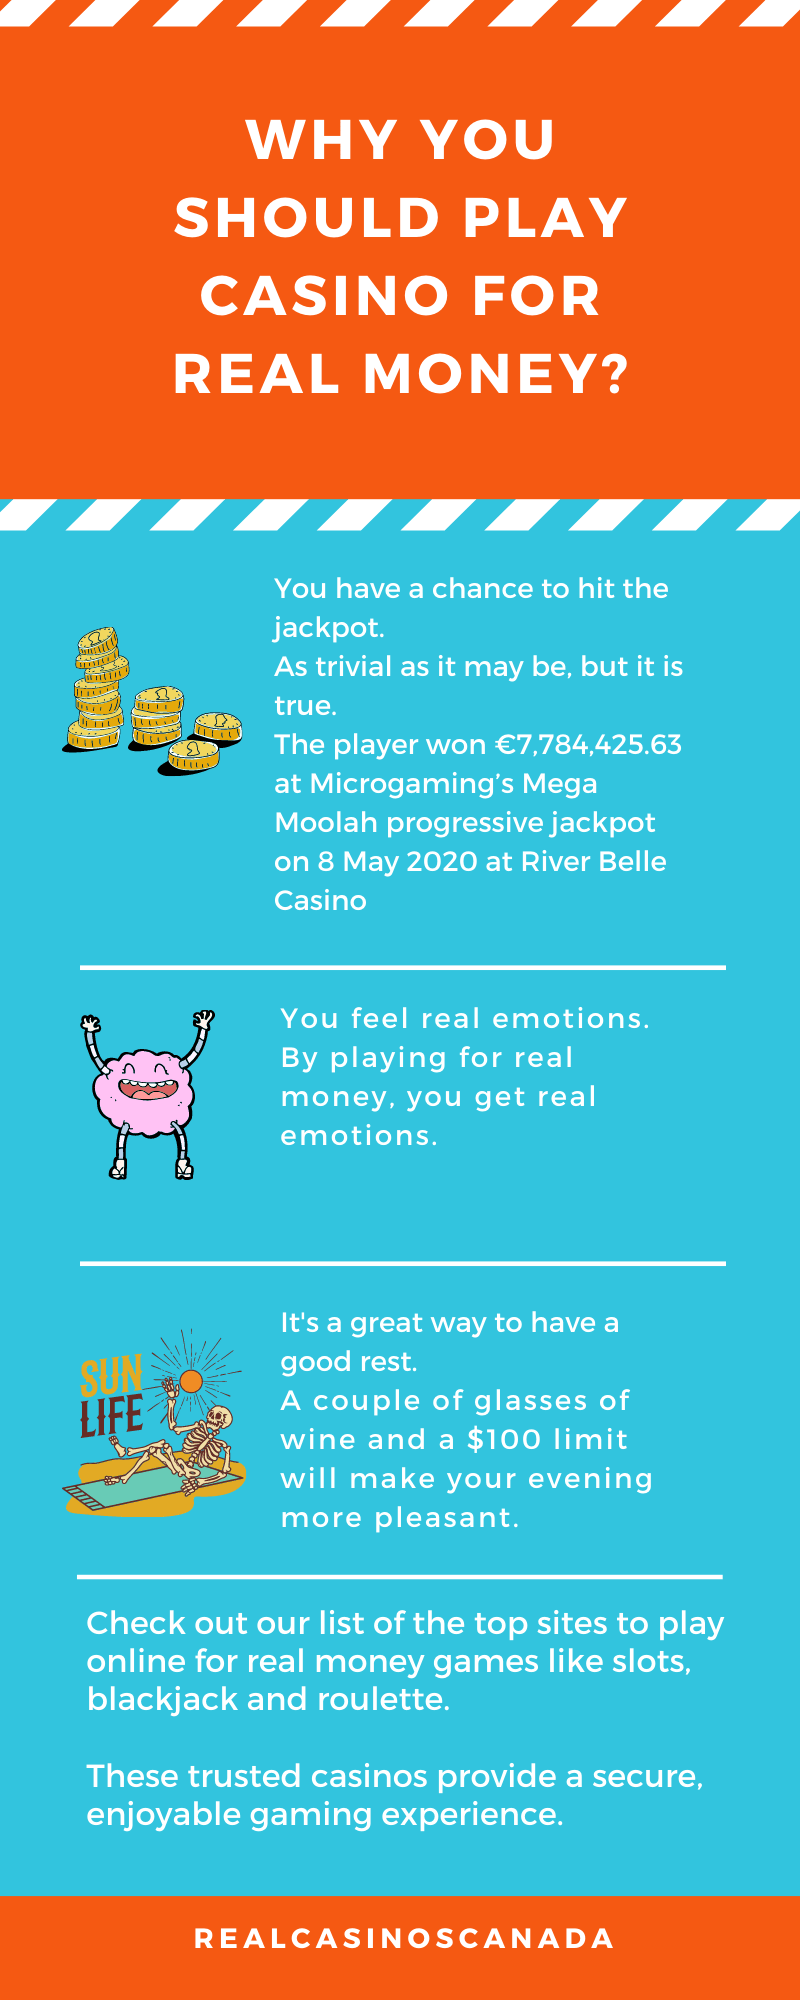 Why you should PLAY casino for real money